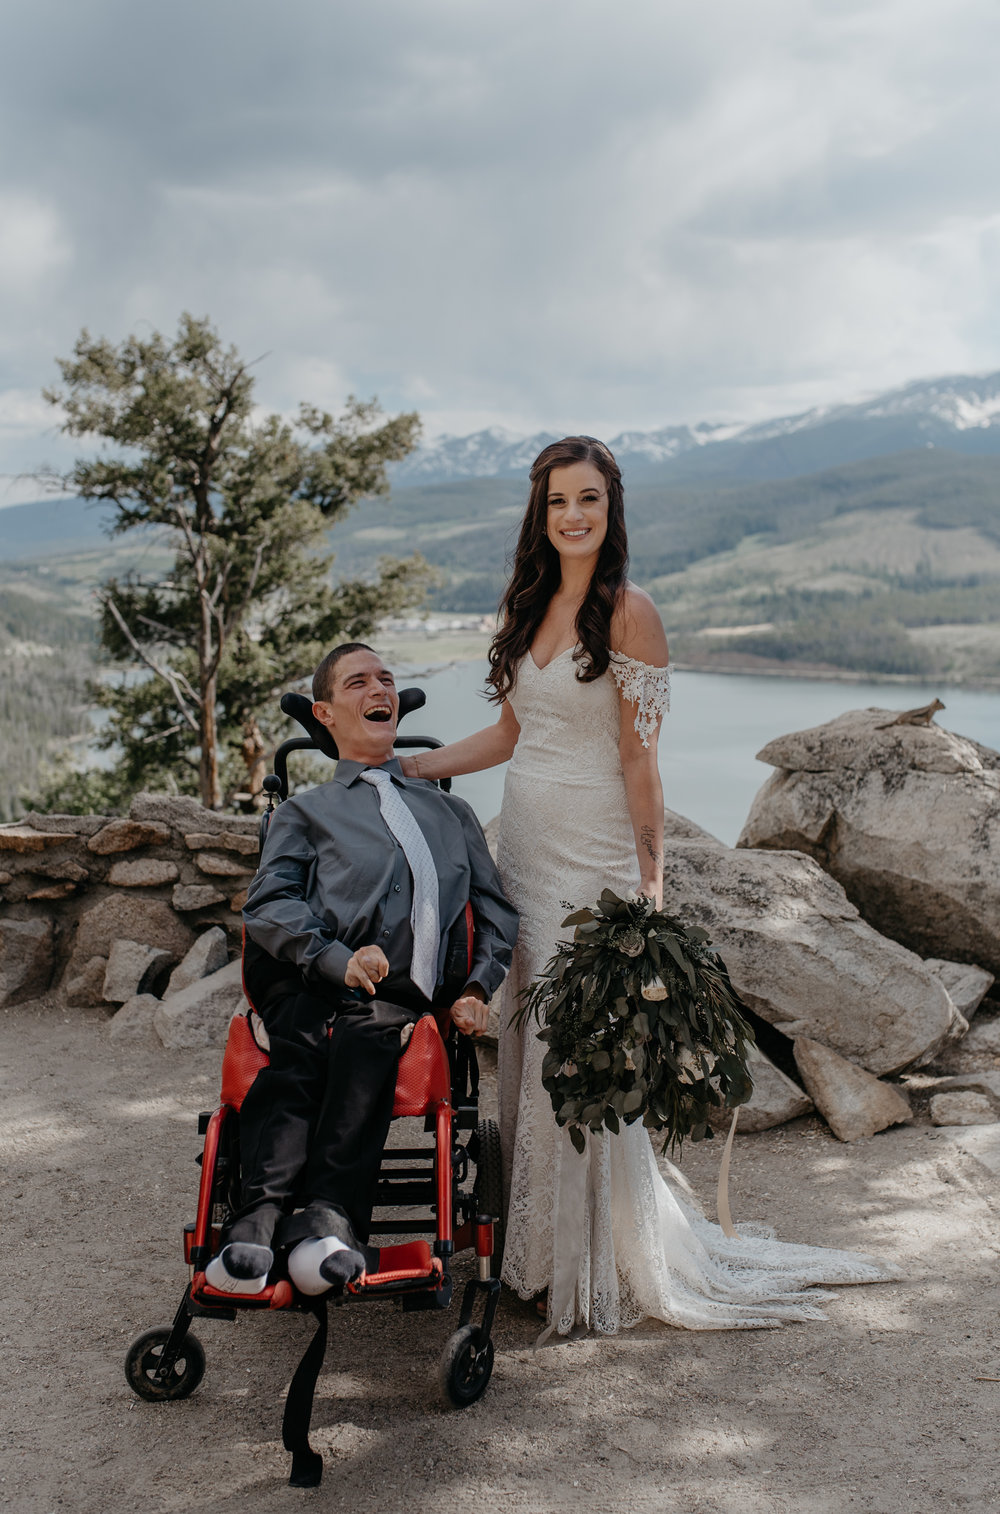 Colorado mountain wedding photographer. Family photos at Sapphire Point elopement.